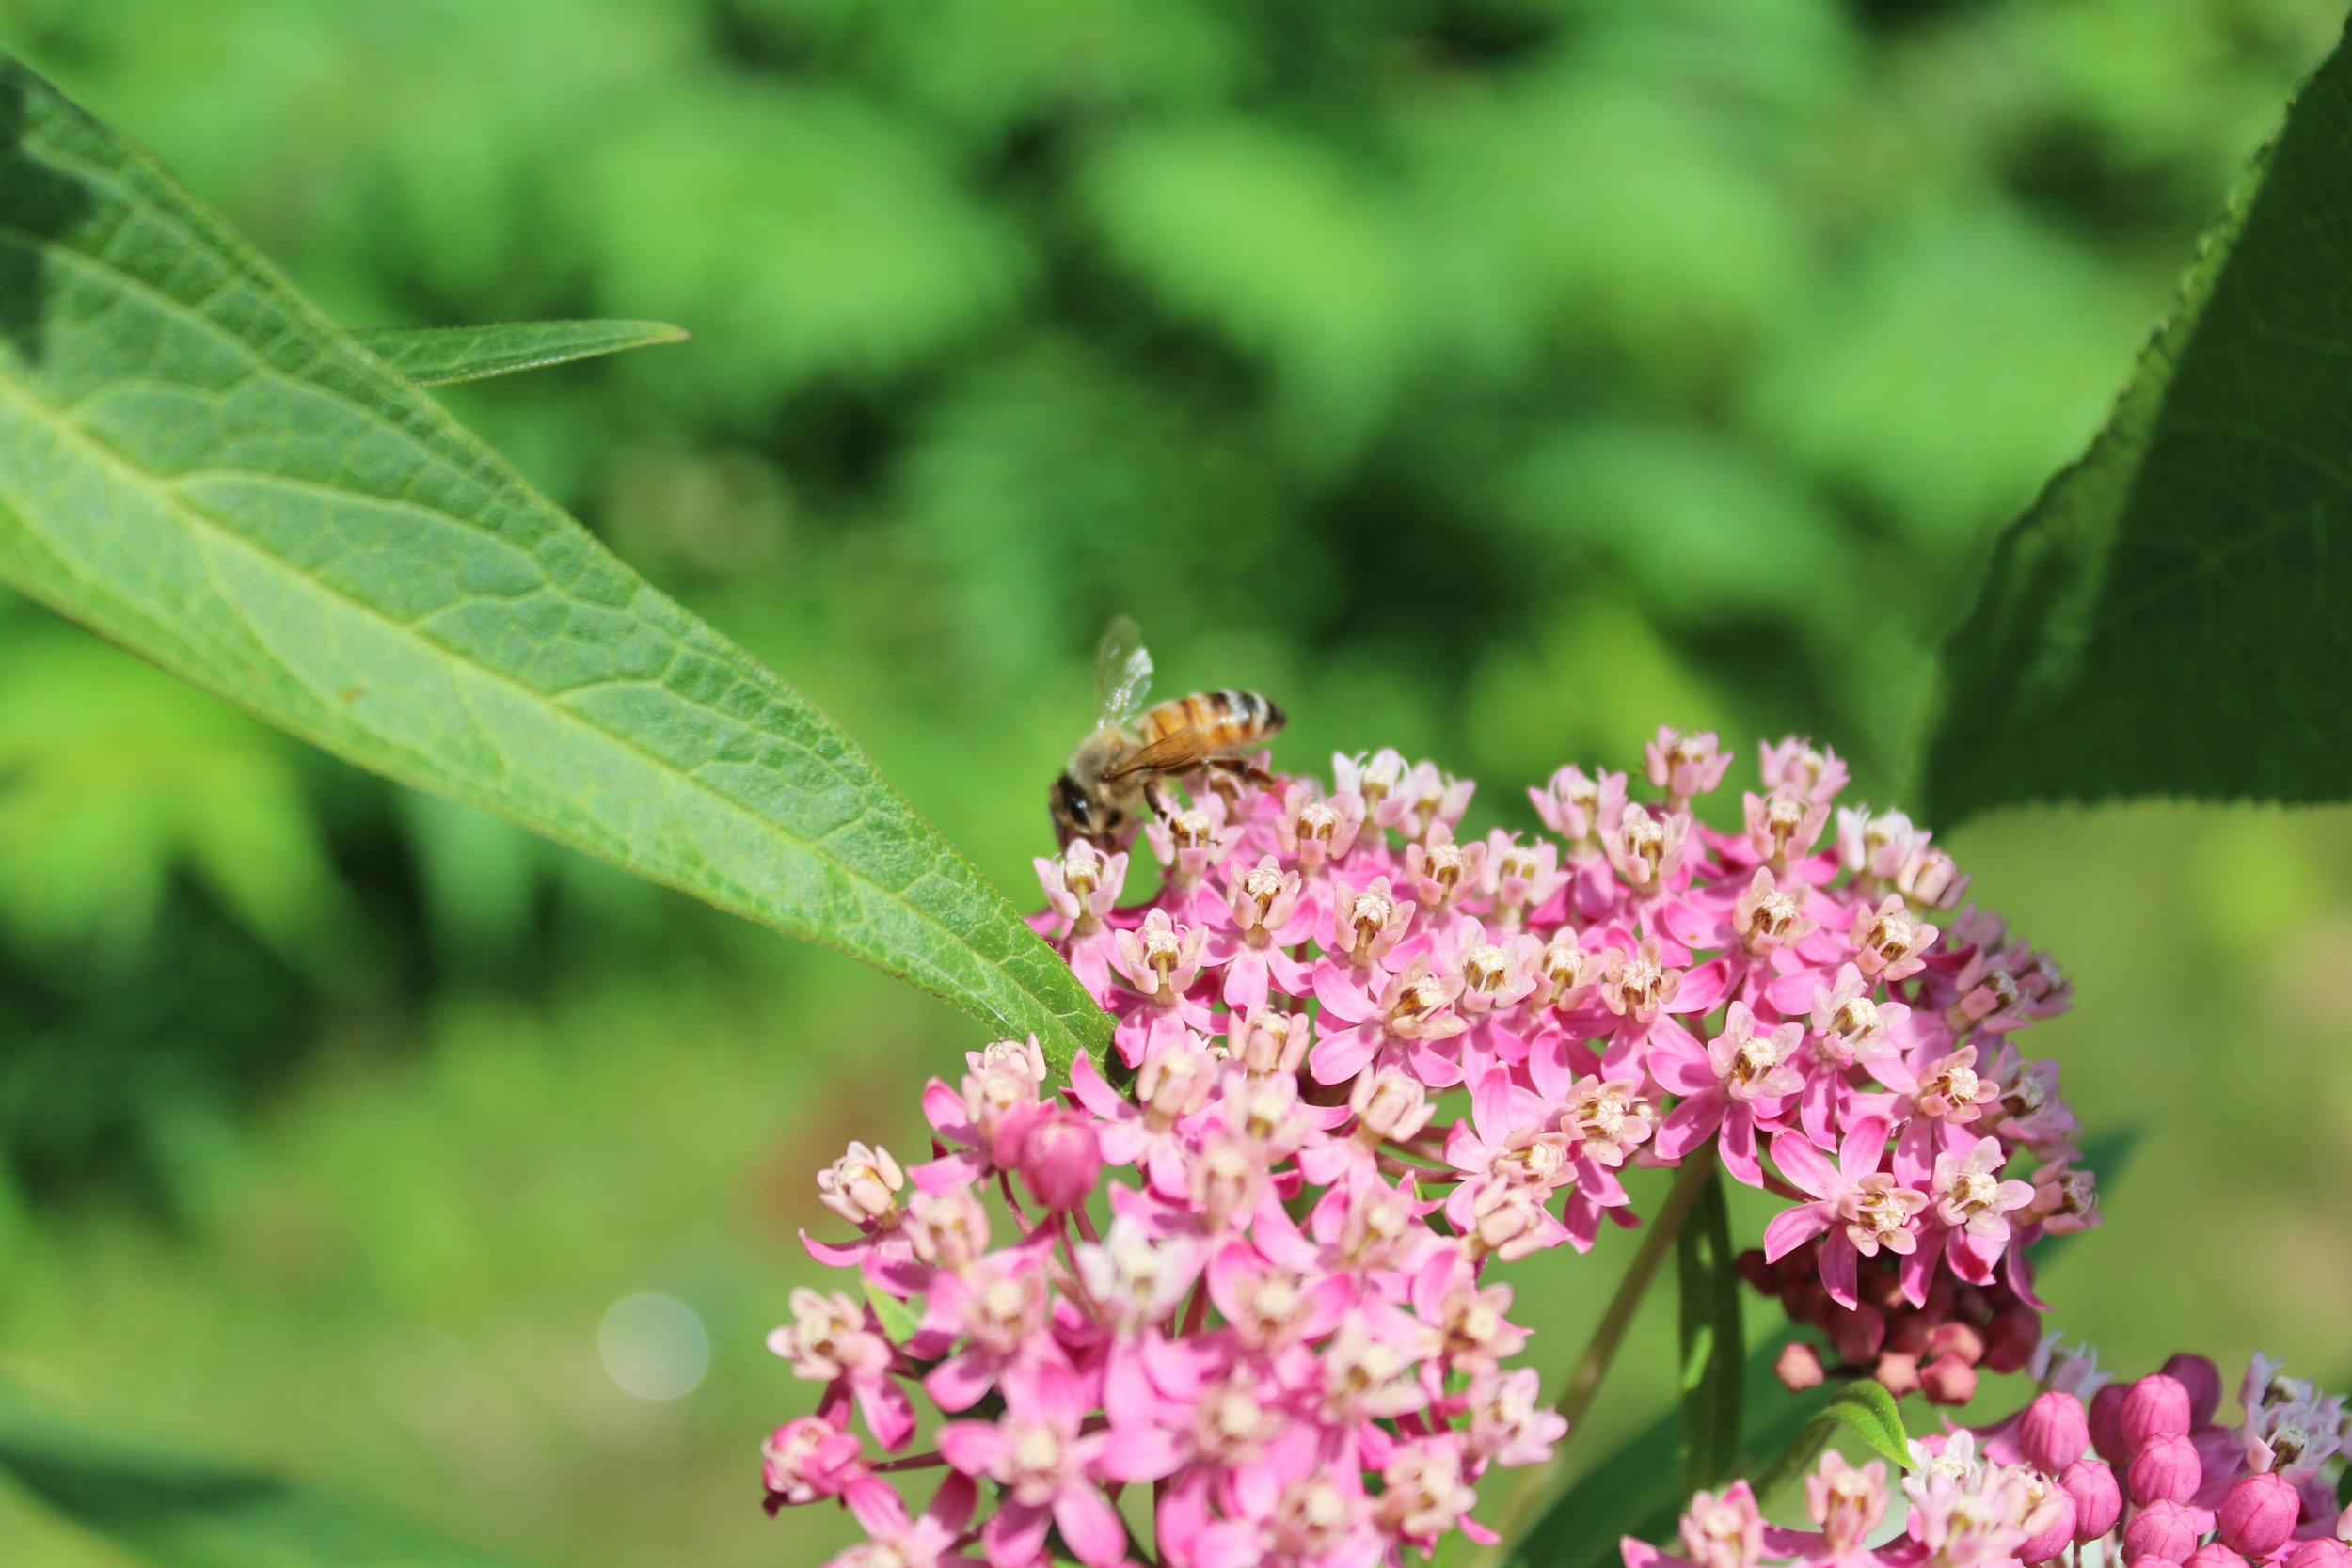 One of Kelly's honeybees enjoying the Butterfly Bush